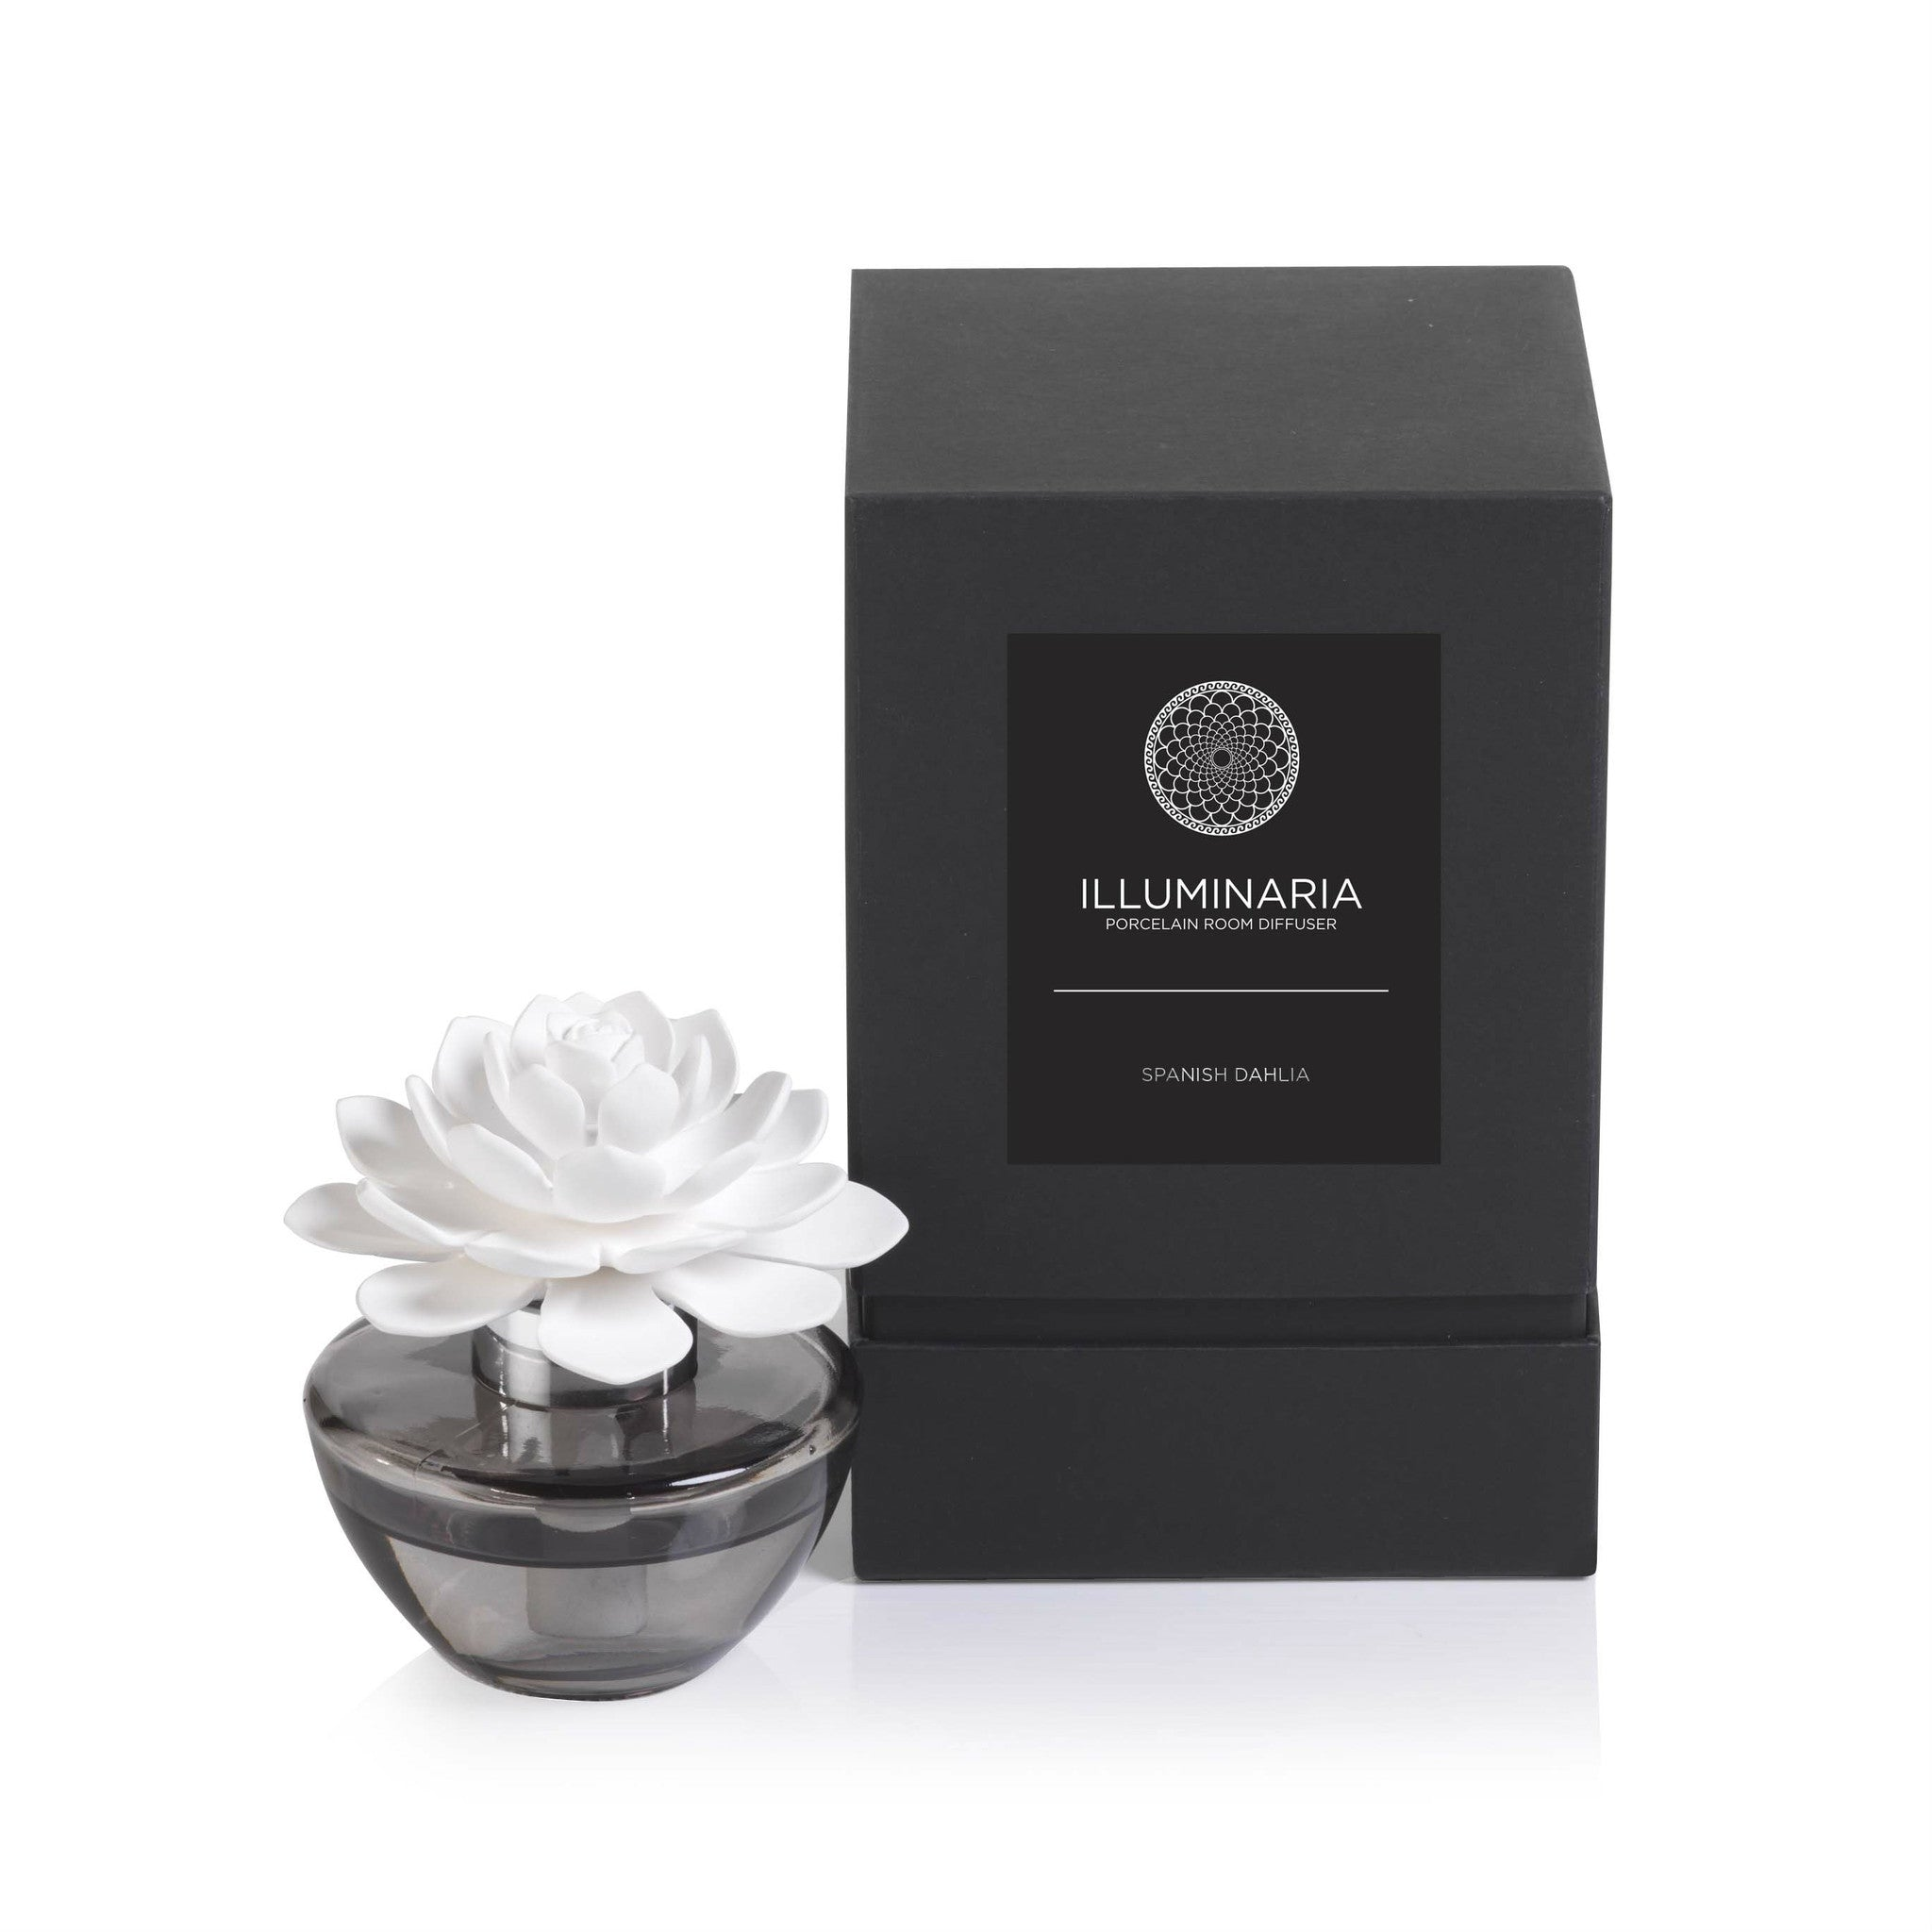 Illuminaria Porcelain Diffuser in Gray Bottle - Spanish Dahlia - CARLYLE AVENUE - 5